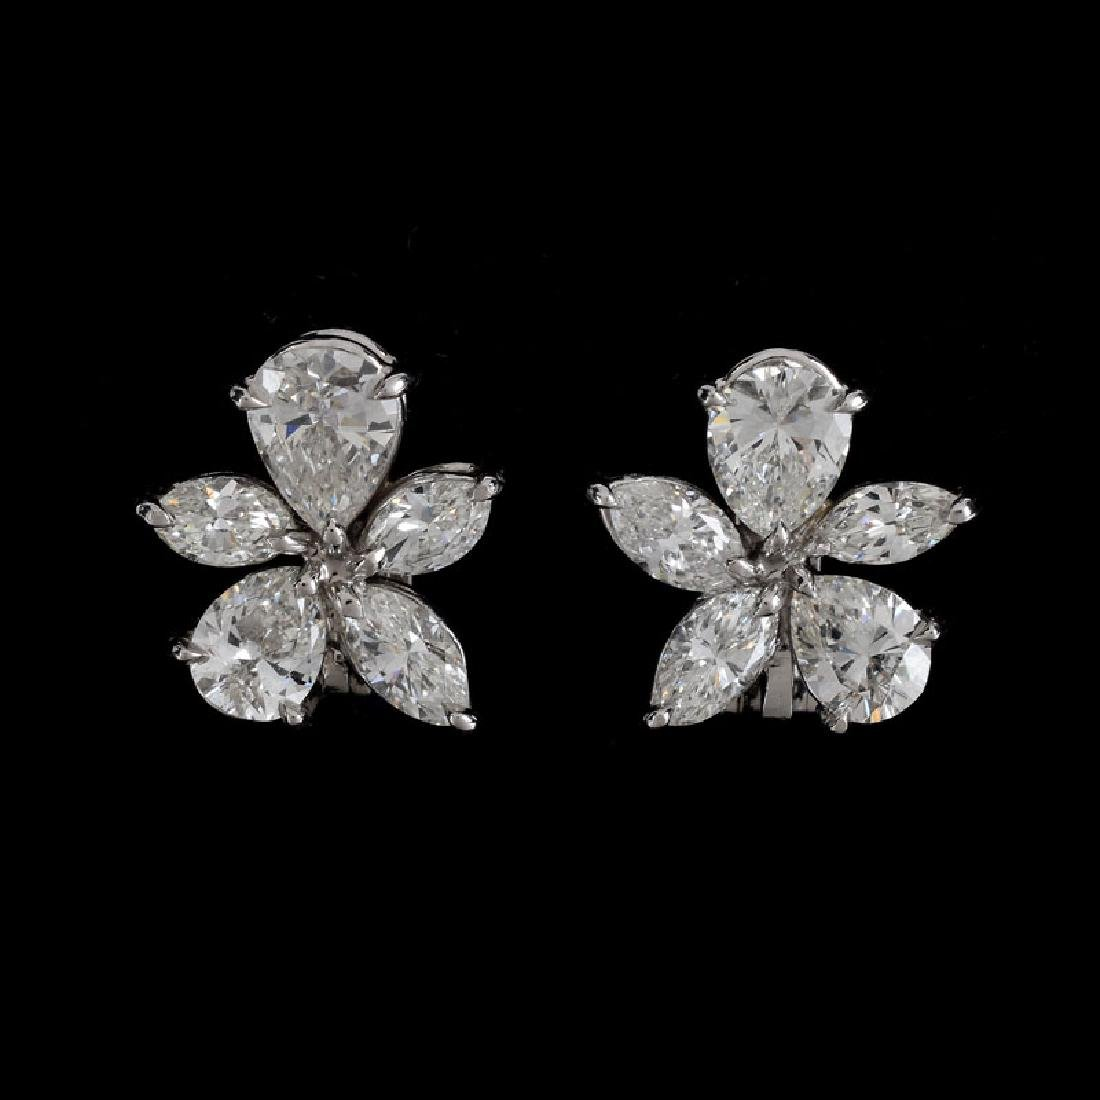 Harry Winston style Approx. 3.75 Carat Pear and